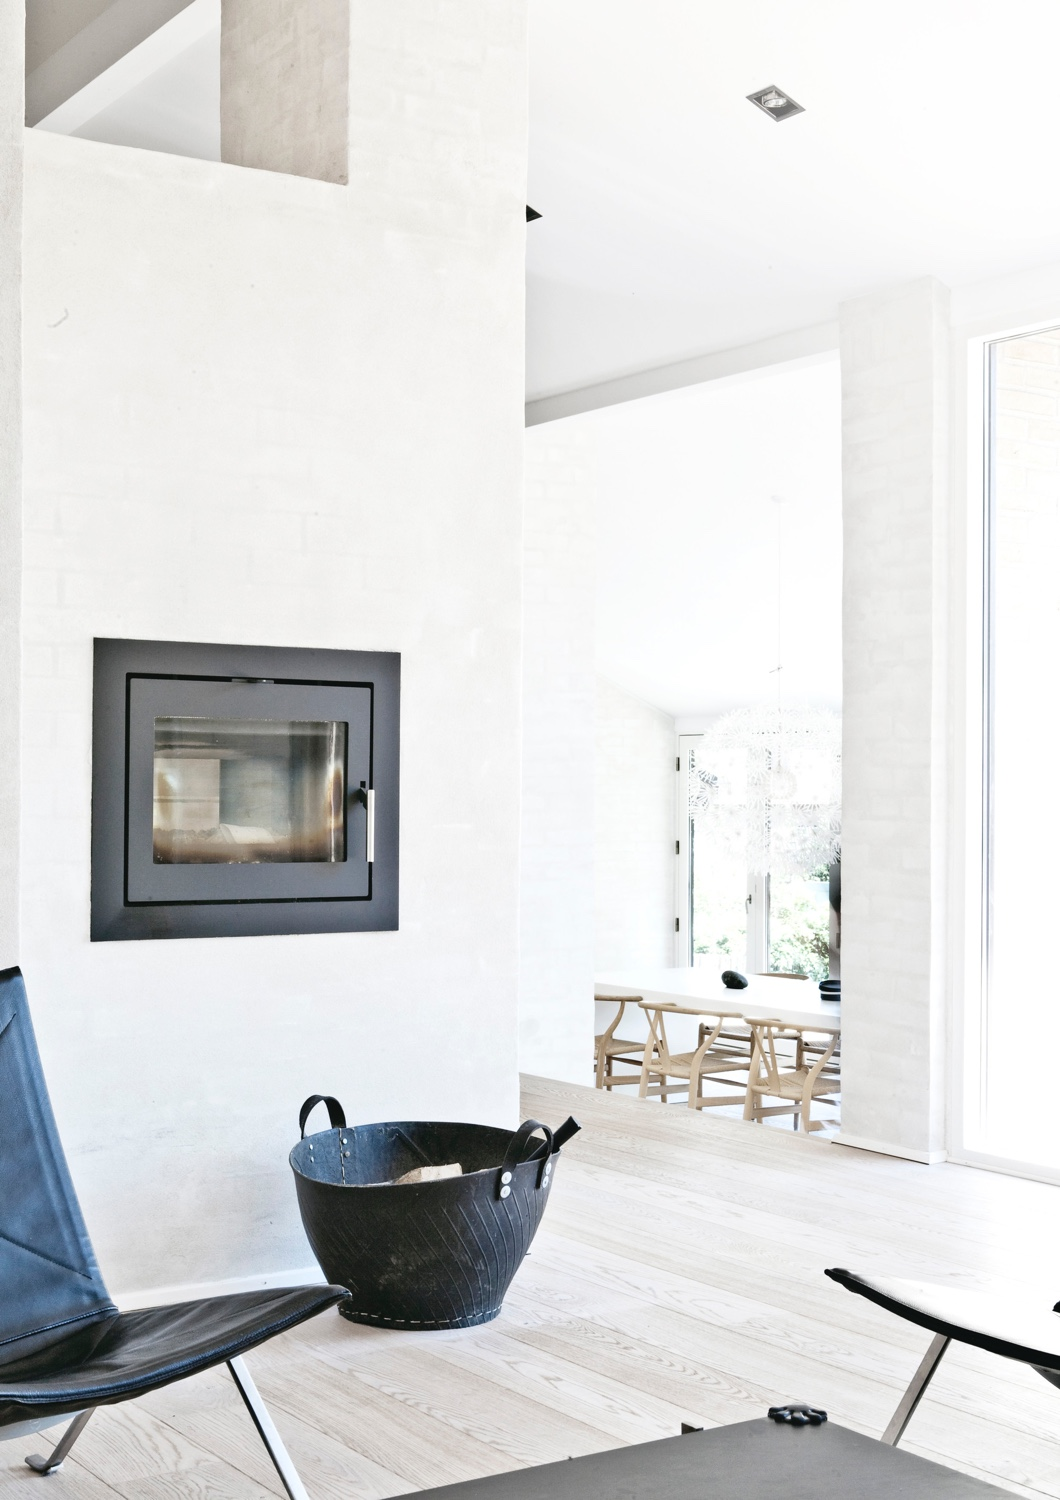 A cosy fireside corner in Fredensborg House designed by Norm Architects. Photo © Jonas Bjerre-Poulsen via ArchDaily.